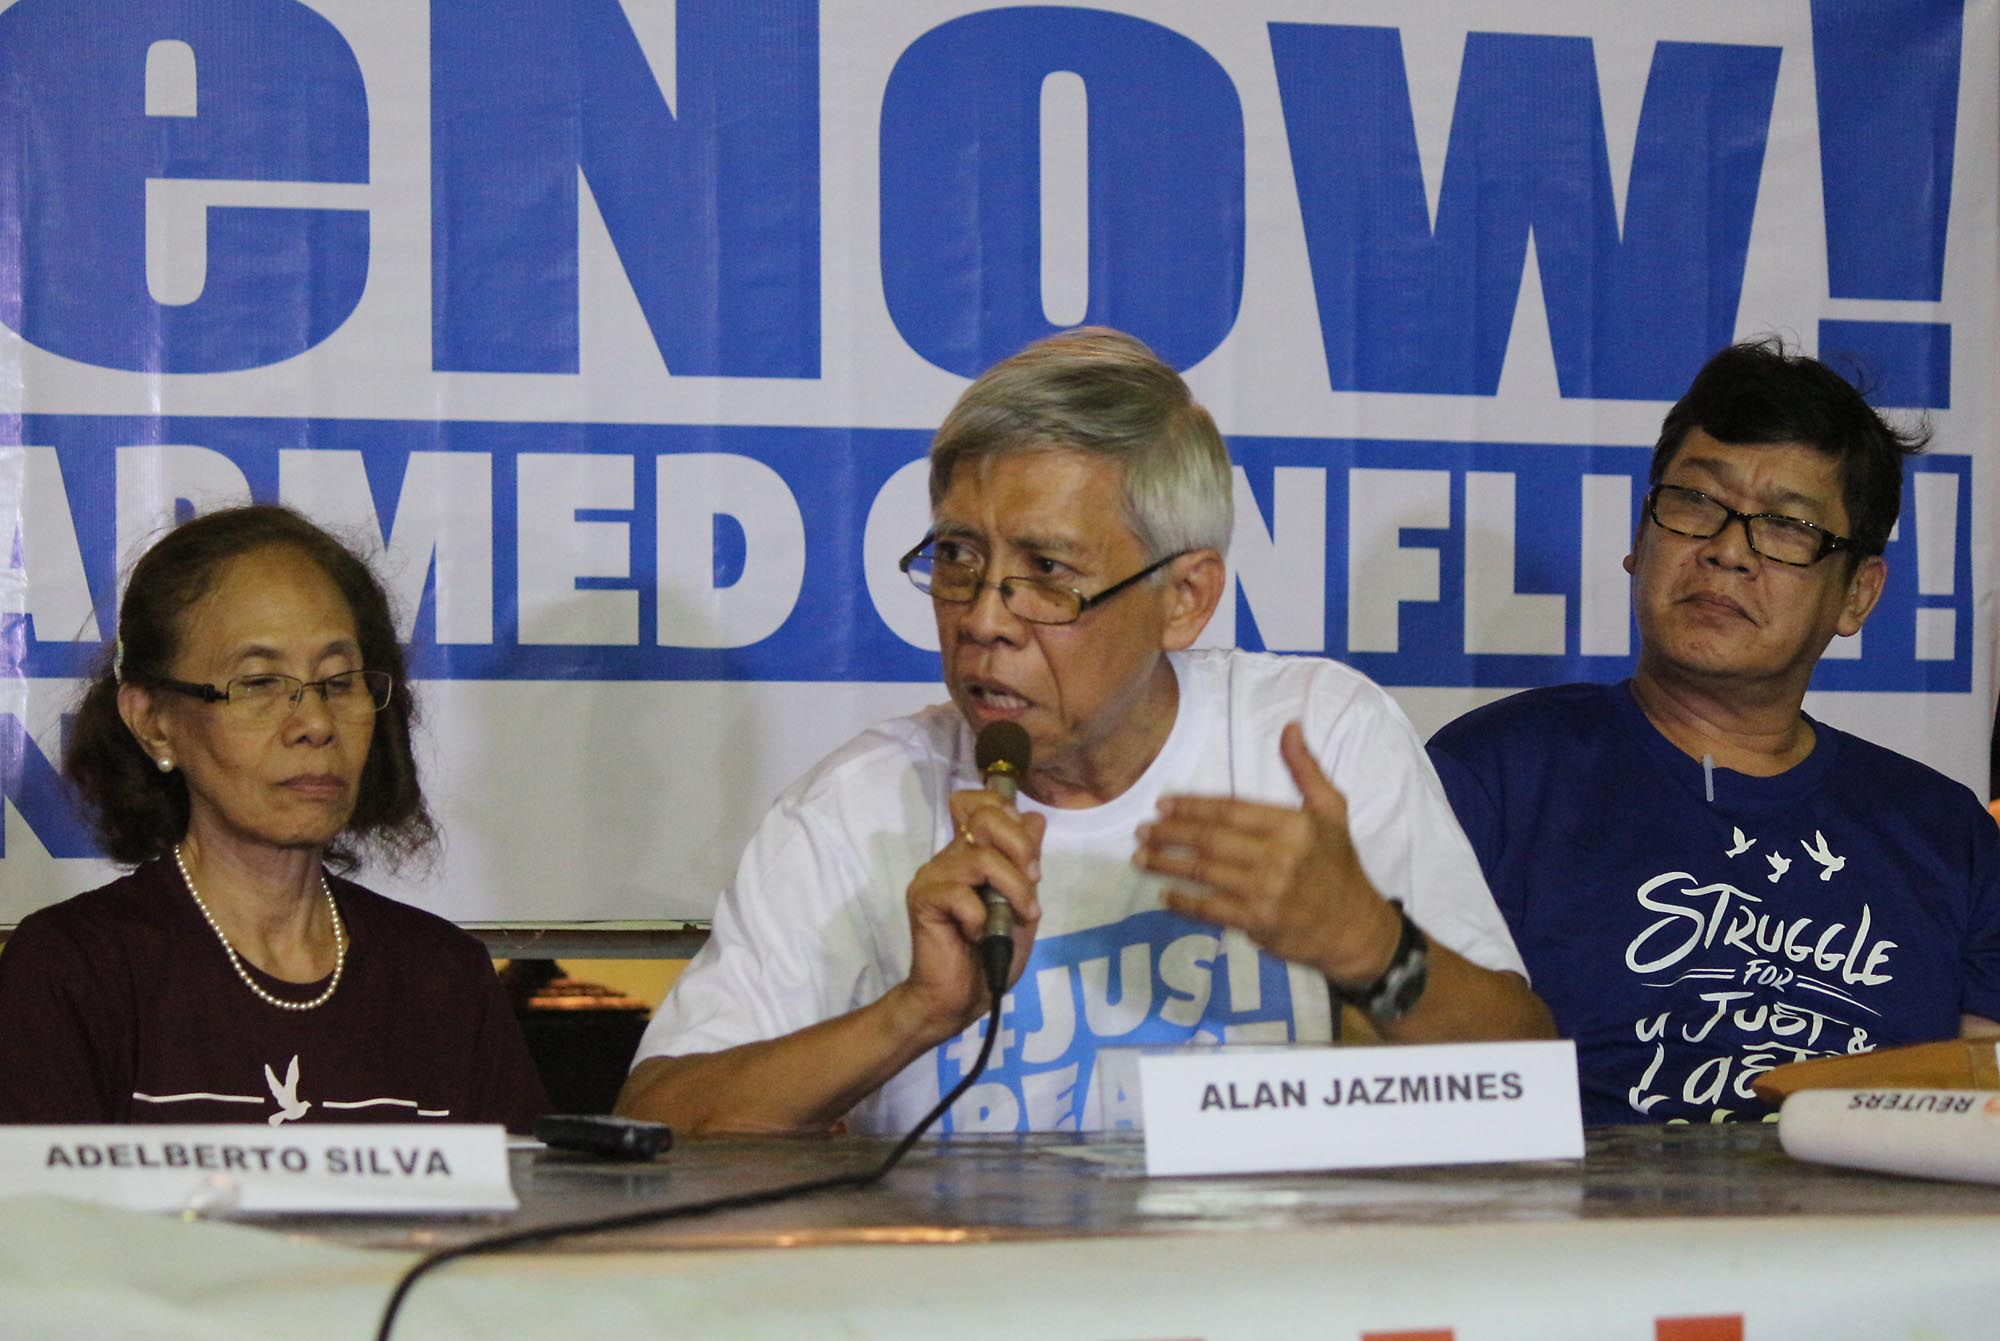 FREE. Freed political prisoners (from left) Concha Araneta Bocalo, Alan Jazmines and Ernesto Lorenzo hold a press conference at the social hall of the Episcopal Mission Center in Quezon City on August 18, 2016. Photo by Joel Liporada/Rappler